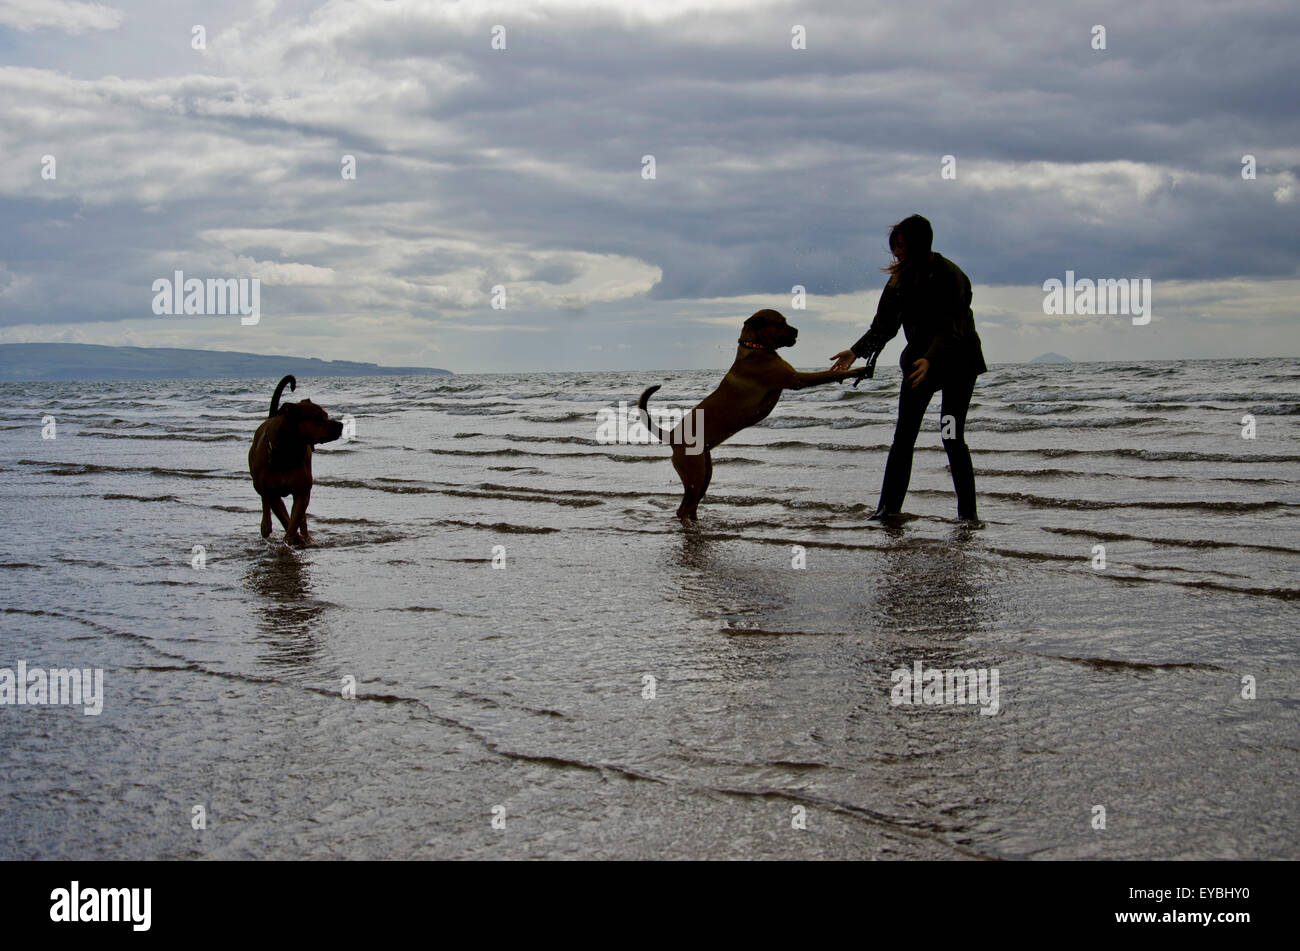 Dogs having fun with their owner on Troon beach, Scotland Stock Photo